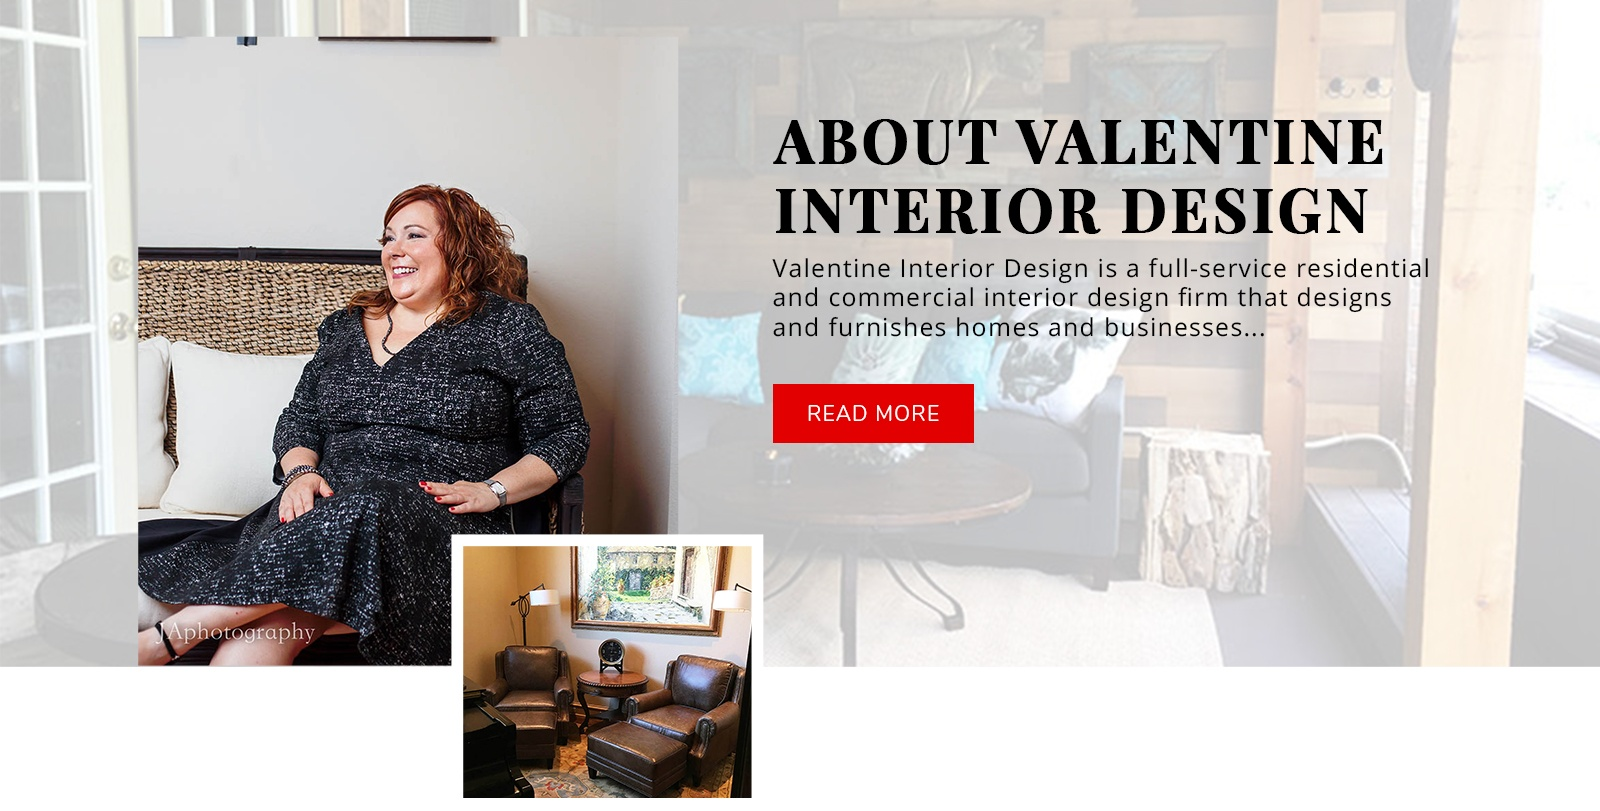 About Valentine Interior Design - Interior Design Company Fort Worth